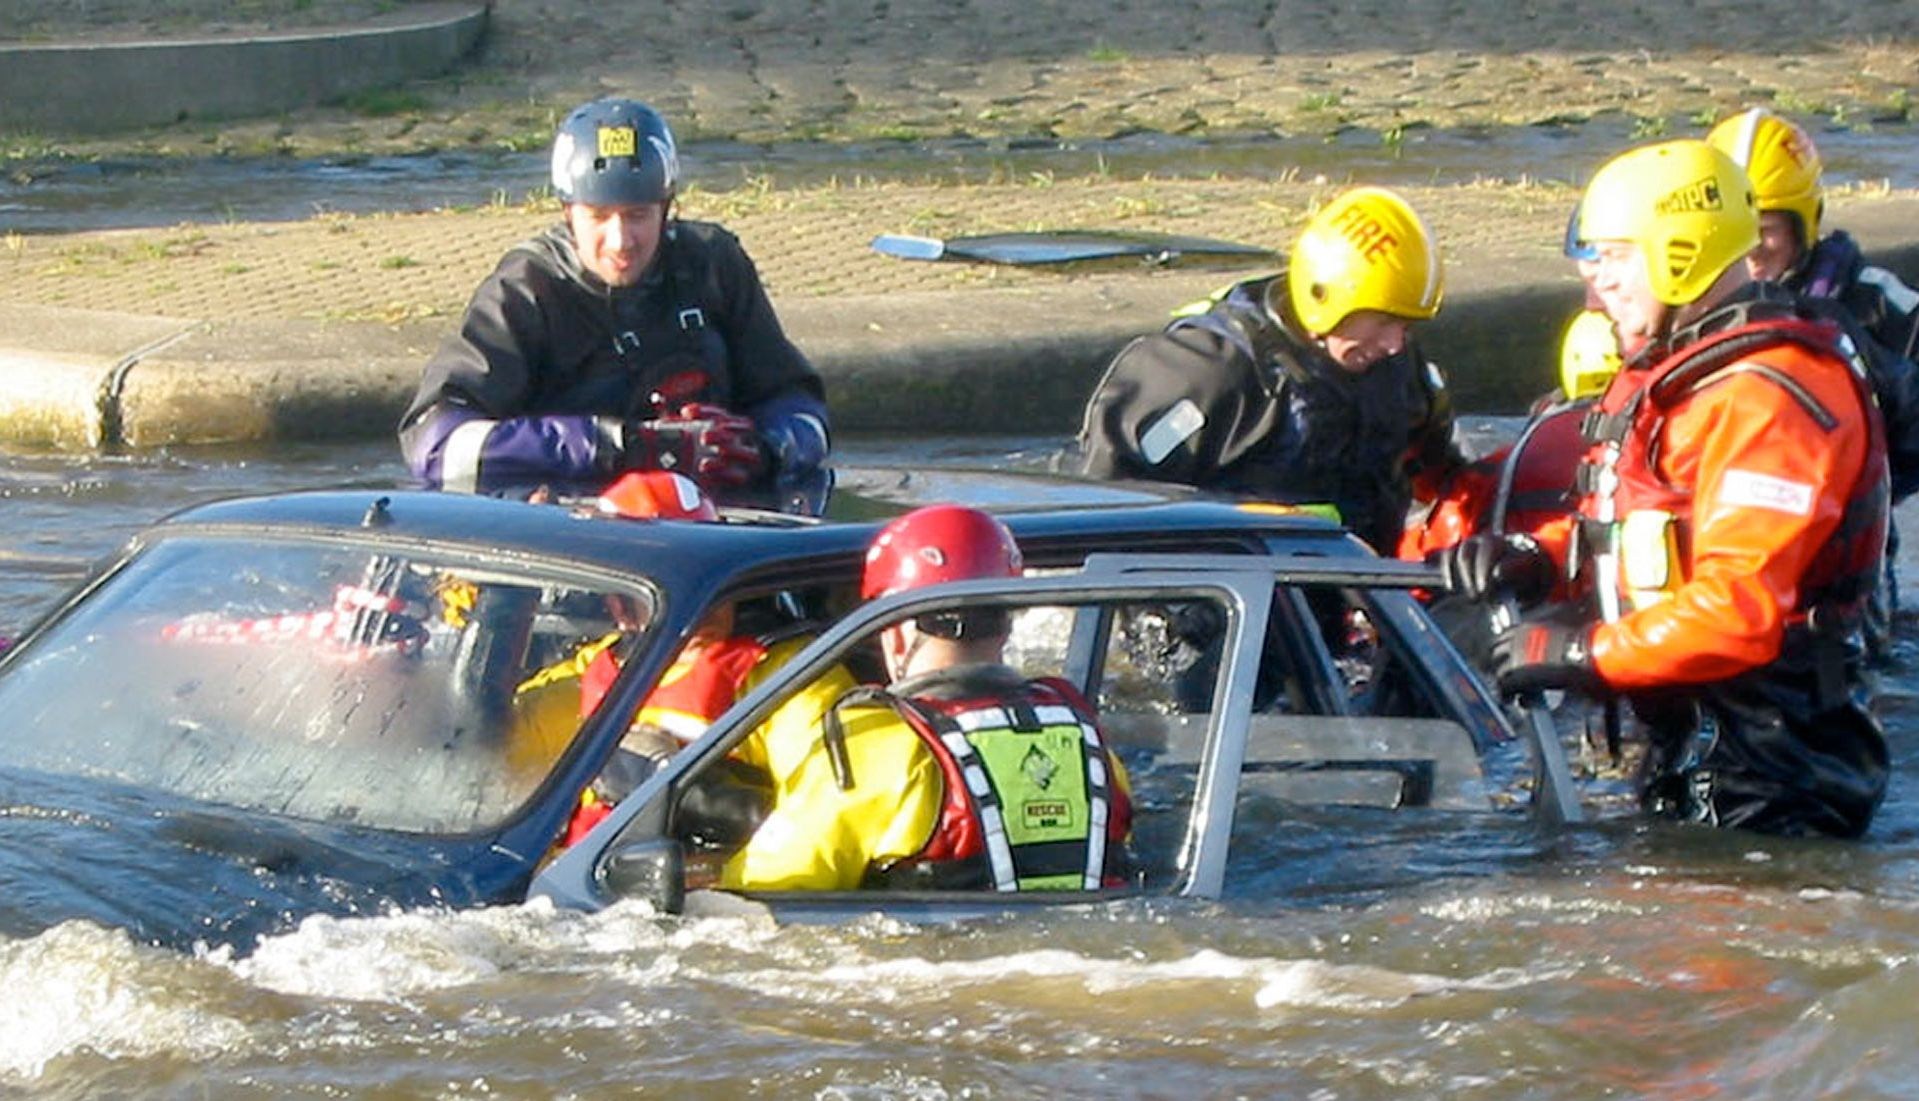 vehicle rescue in water